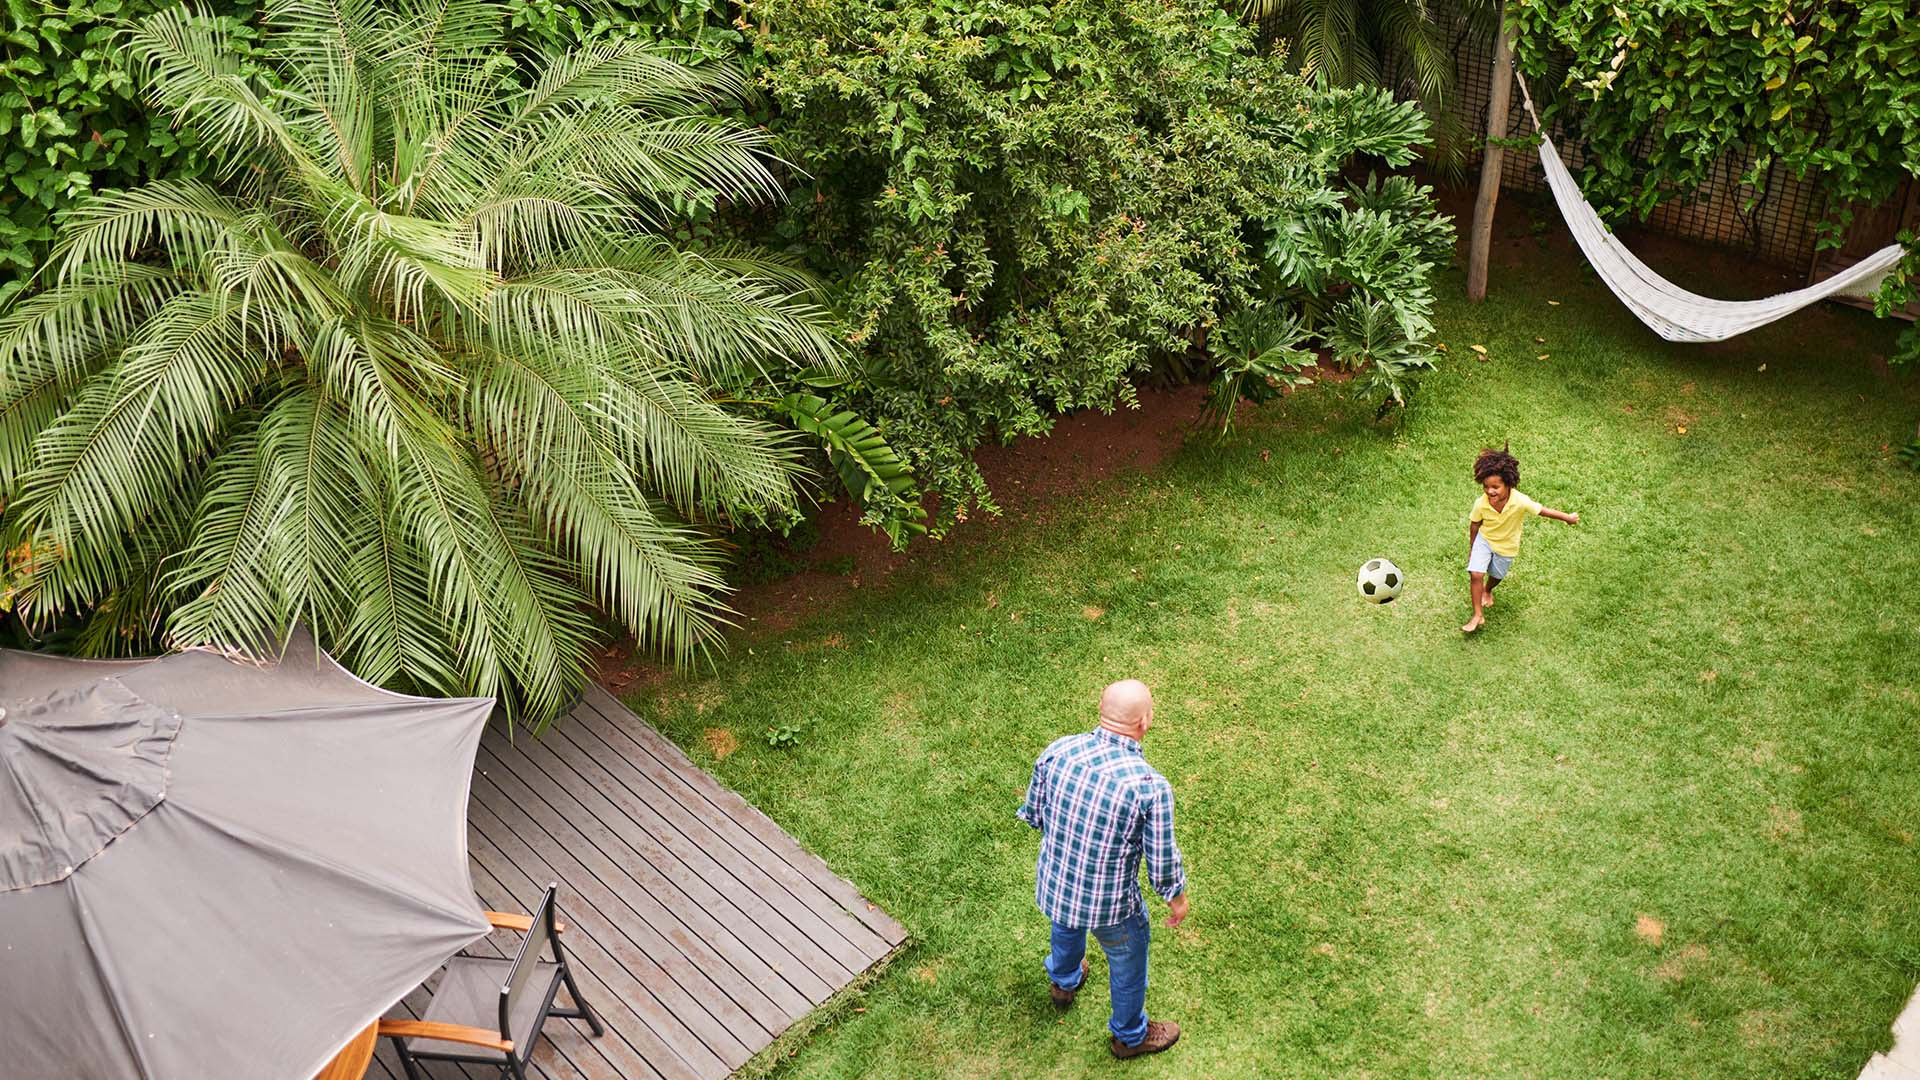 stop attracting insects to your yard